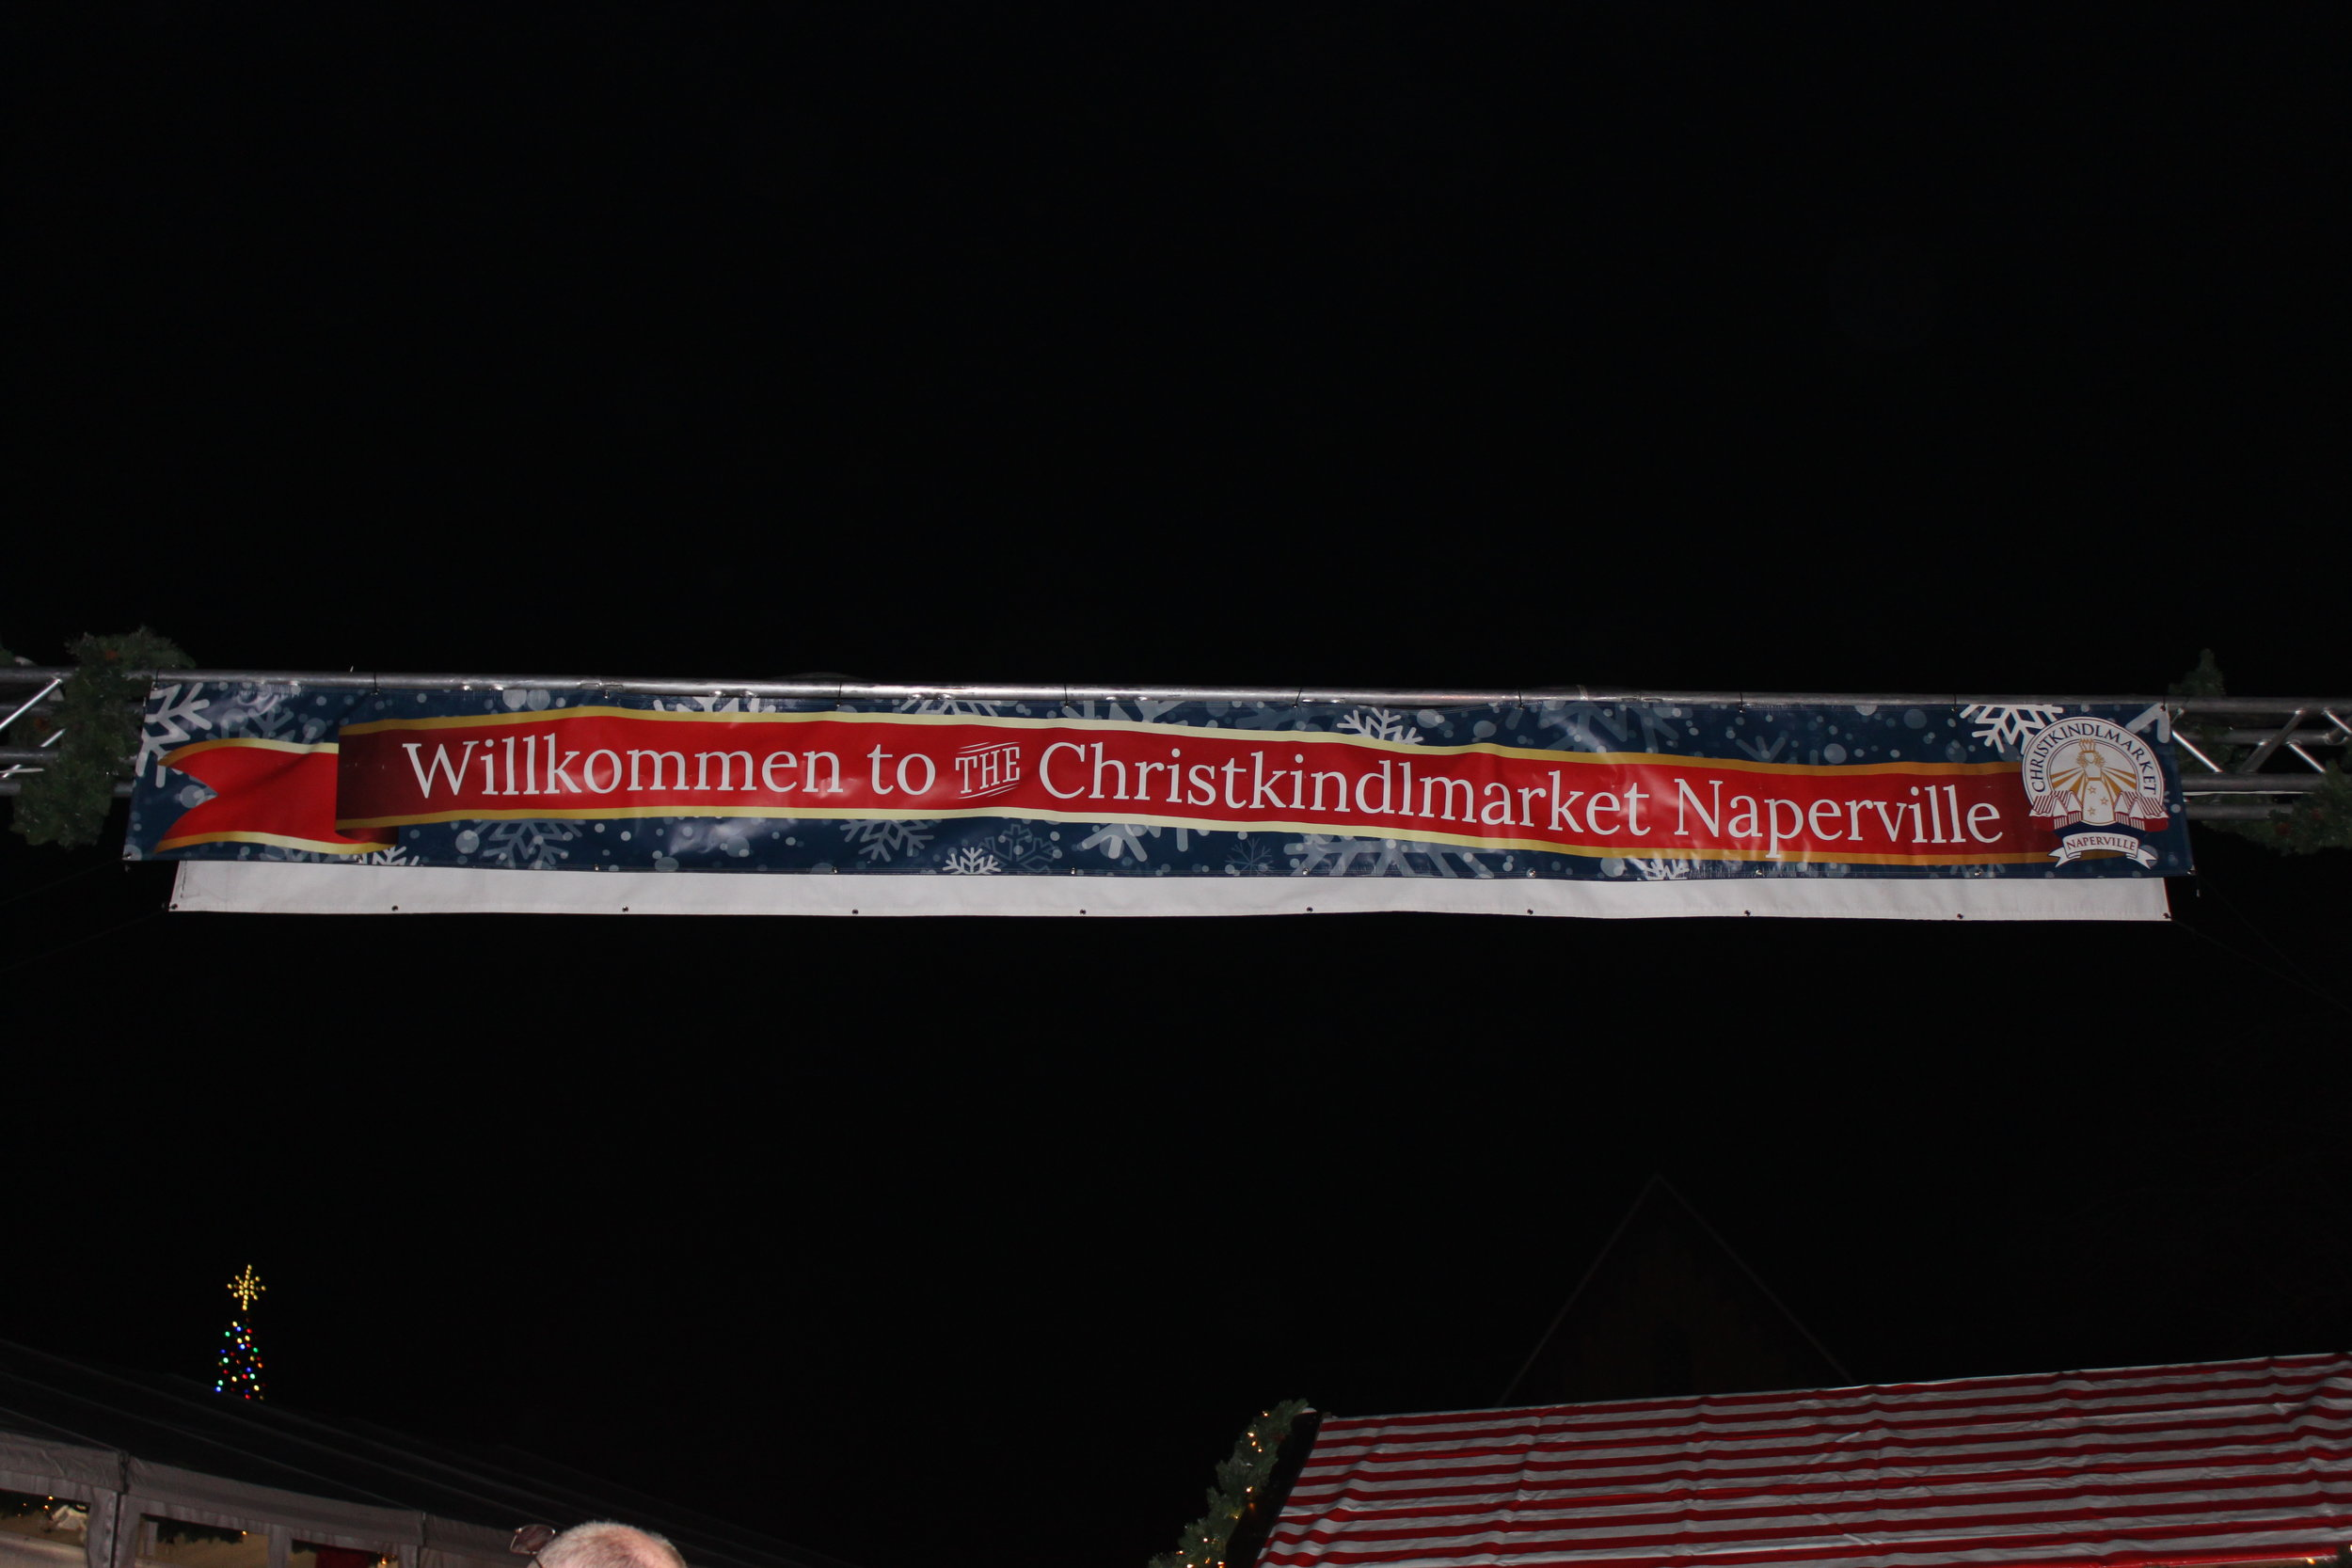 A banner welcomes visitors to the Kindlemart.